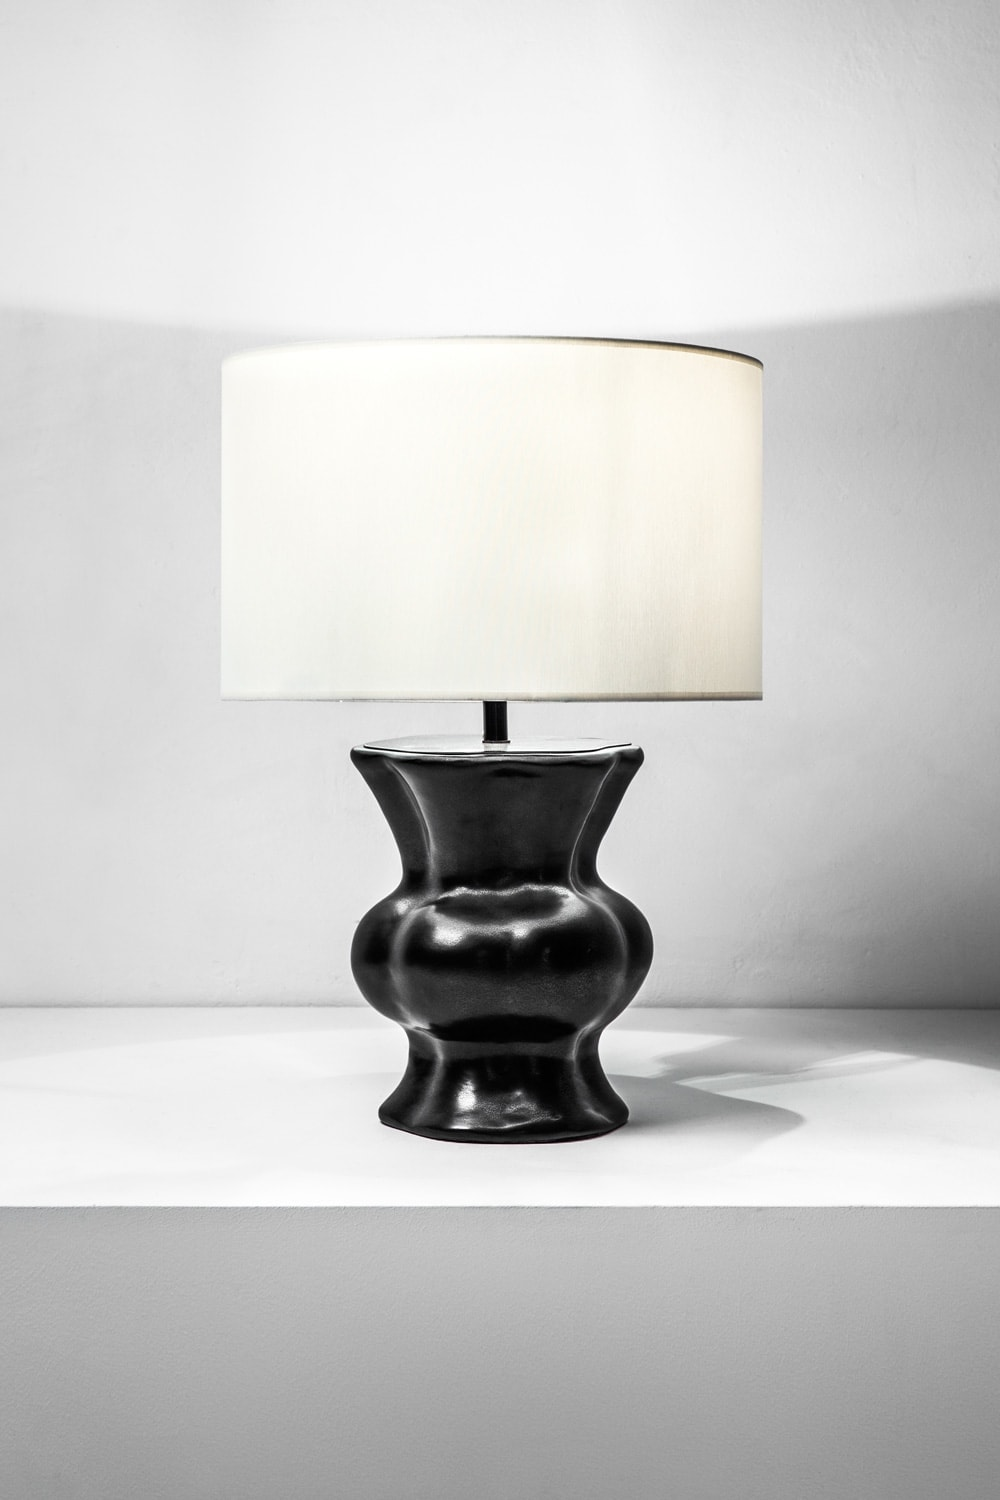 Georges Jouve, Lamp (sold), vue 01